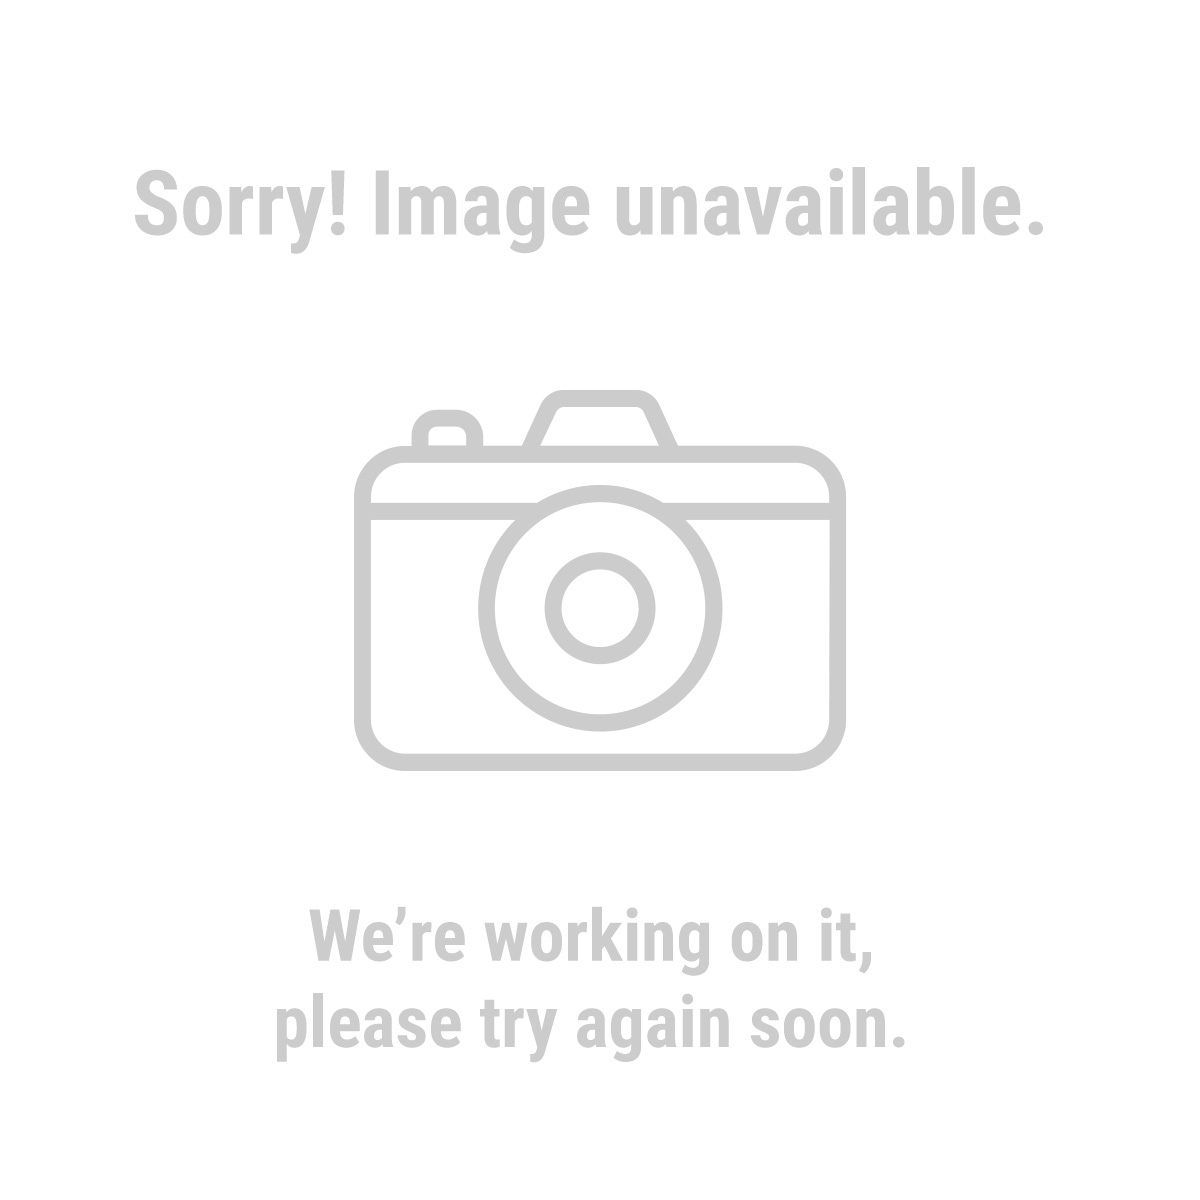 8 Piece High Visibility 3/8 in. Drive Metric Deep Wall Impact Socket Set